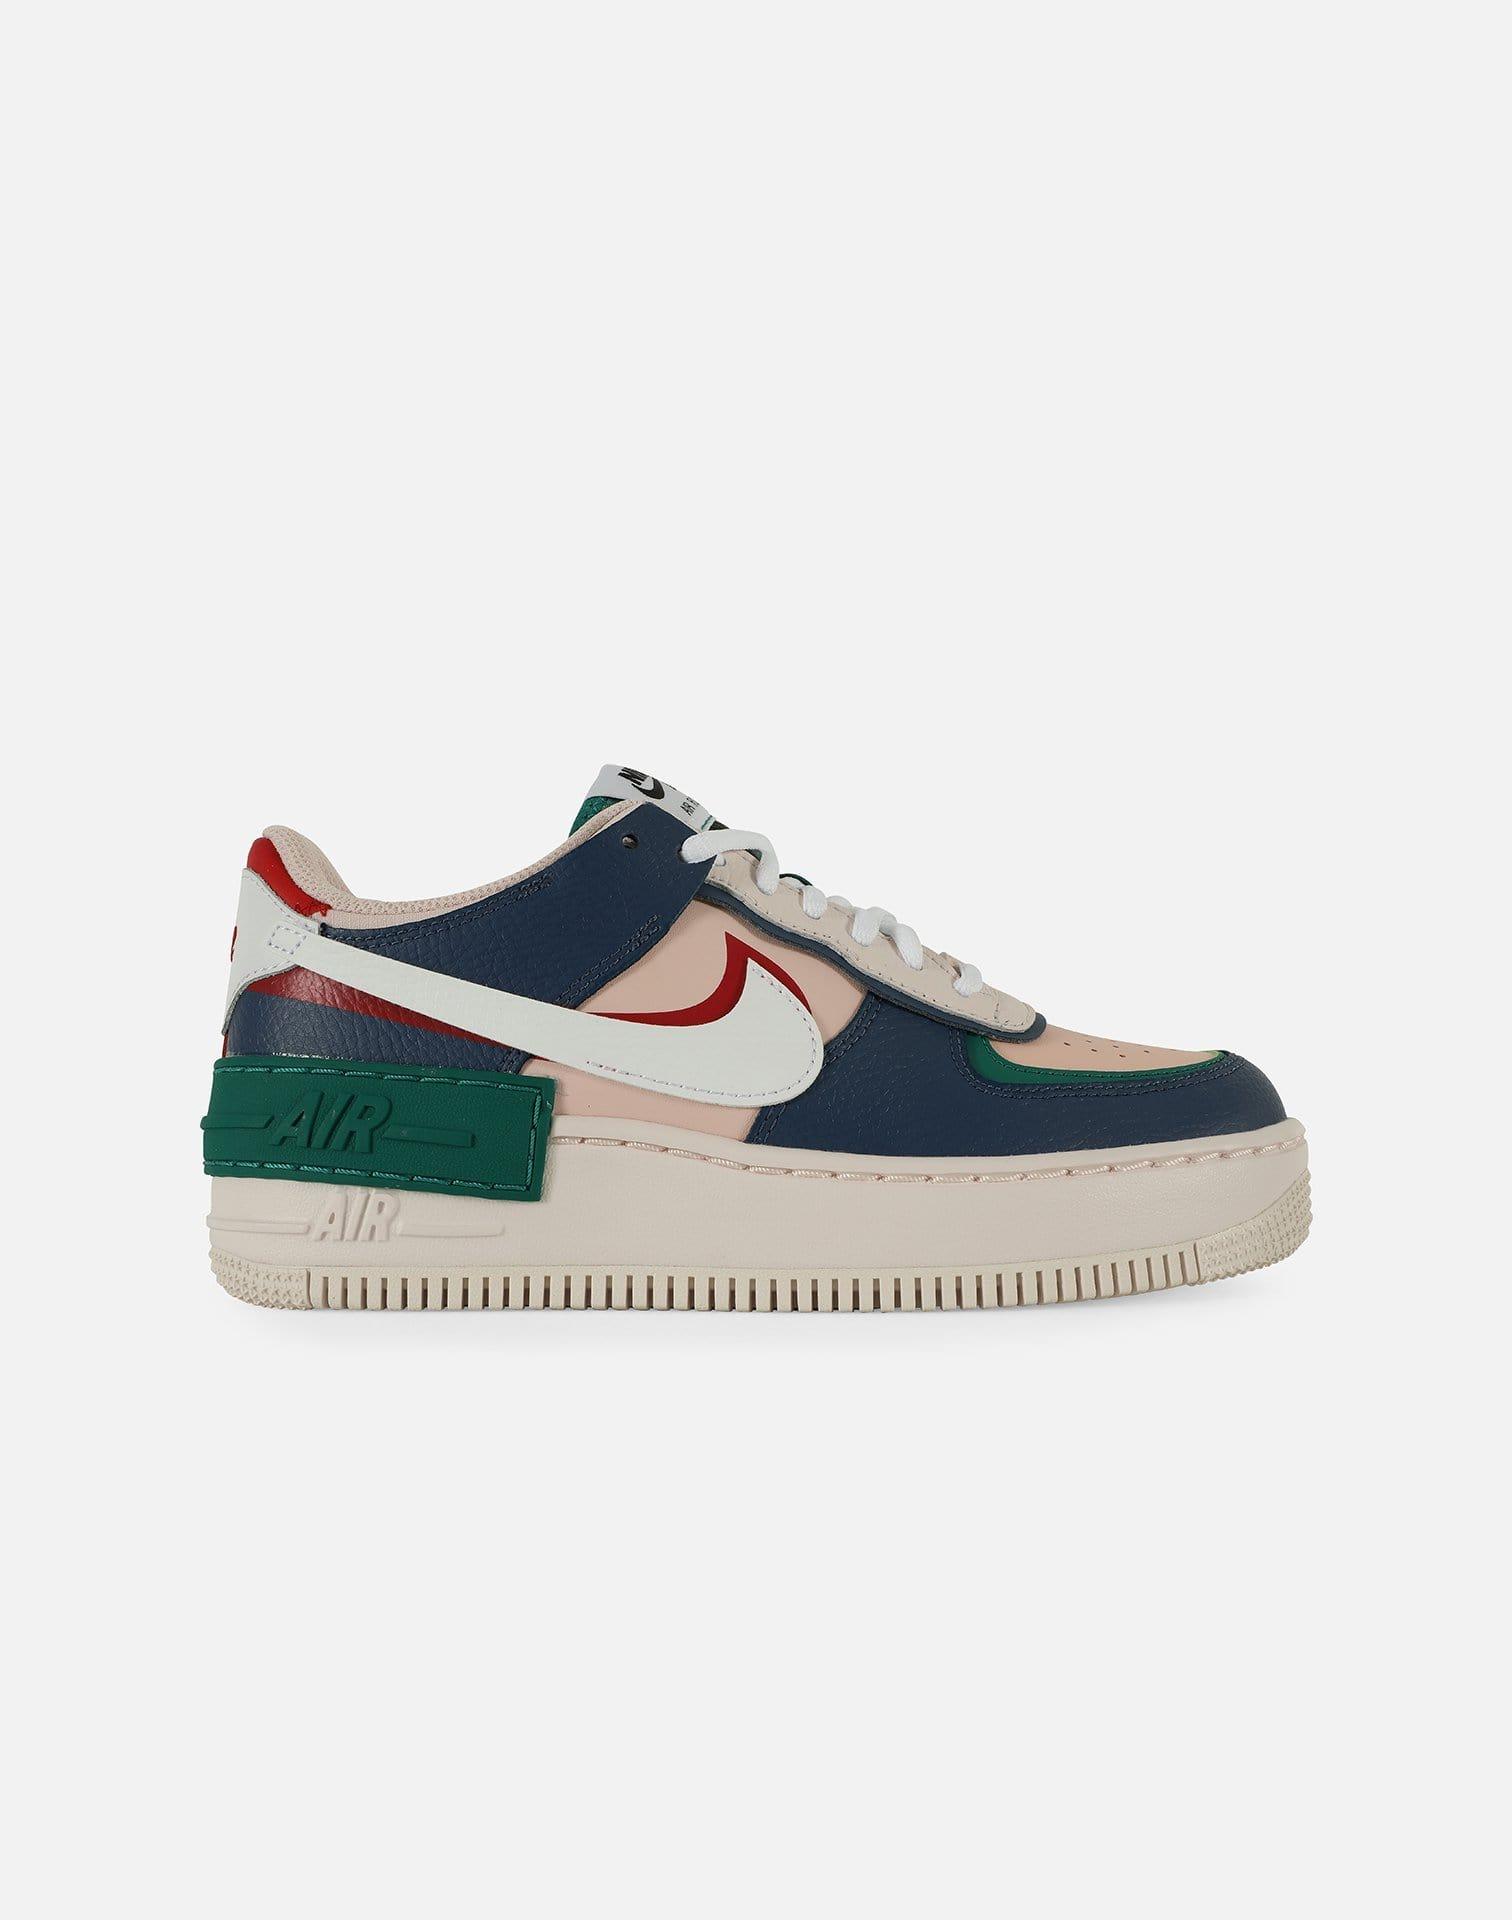 Nike Women's Air Force 1 '07 Low 'Shadow'